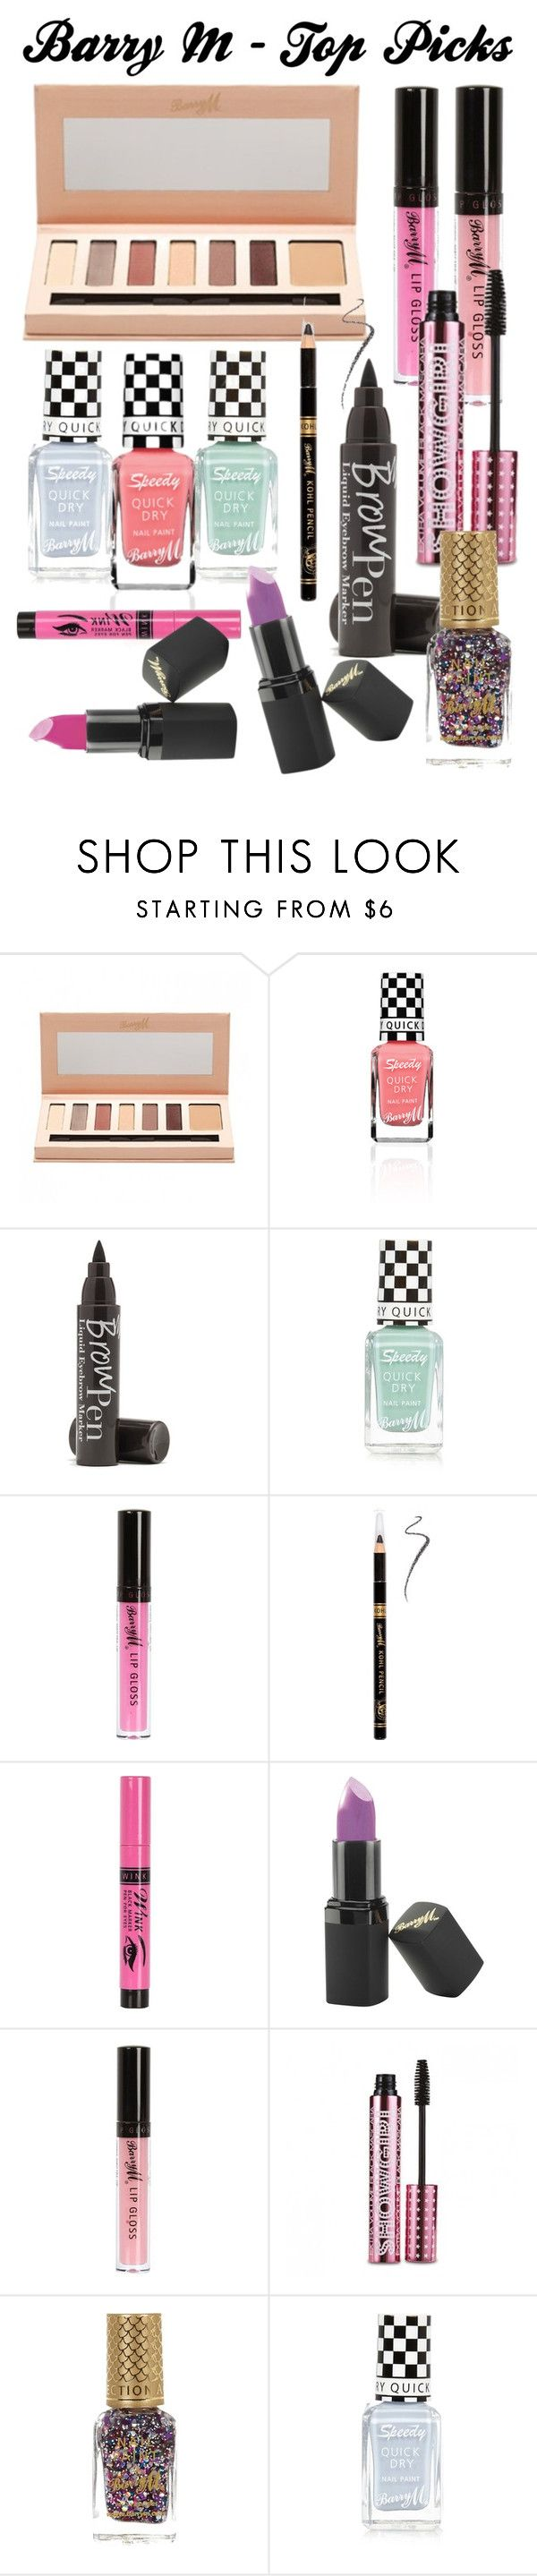 Barry M - Top Picks by stylebycharlene on Polyvore featuring beauty, Barry M and River Island